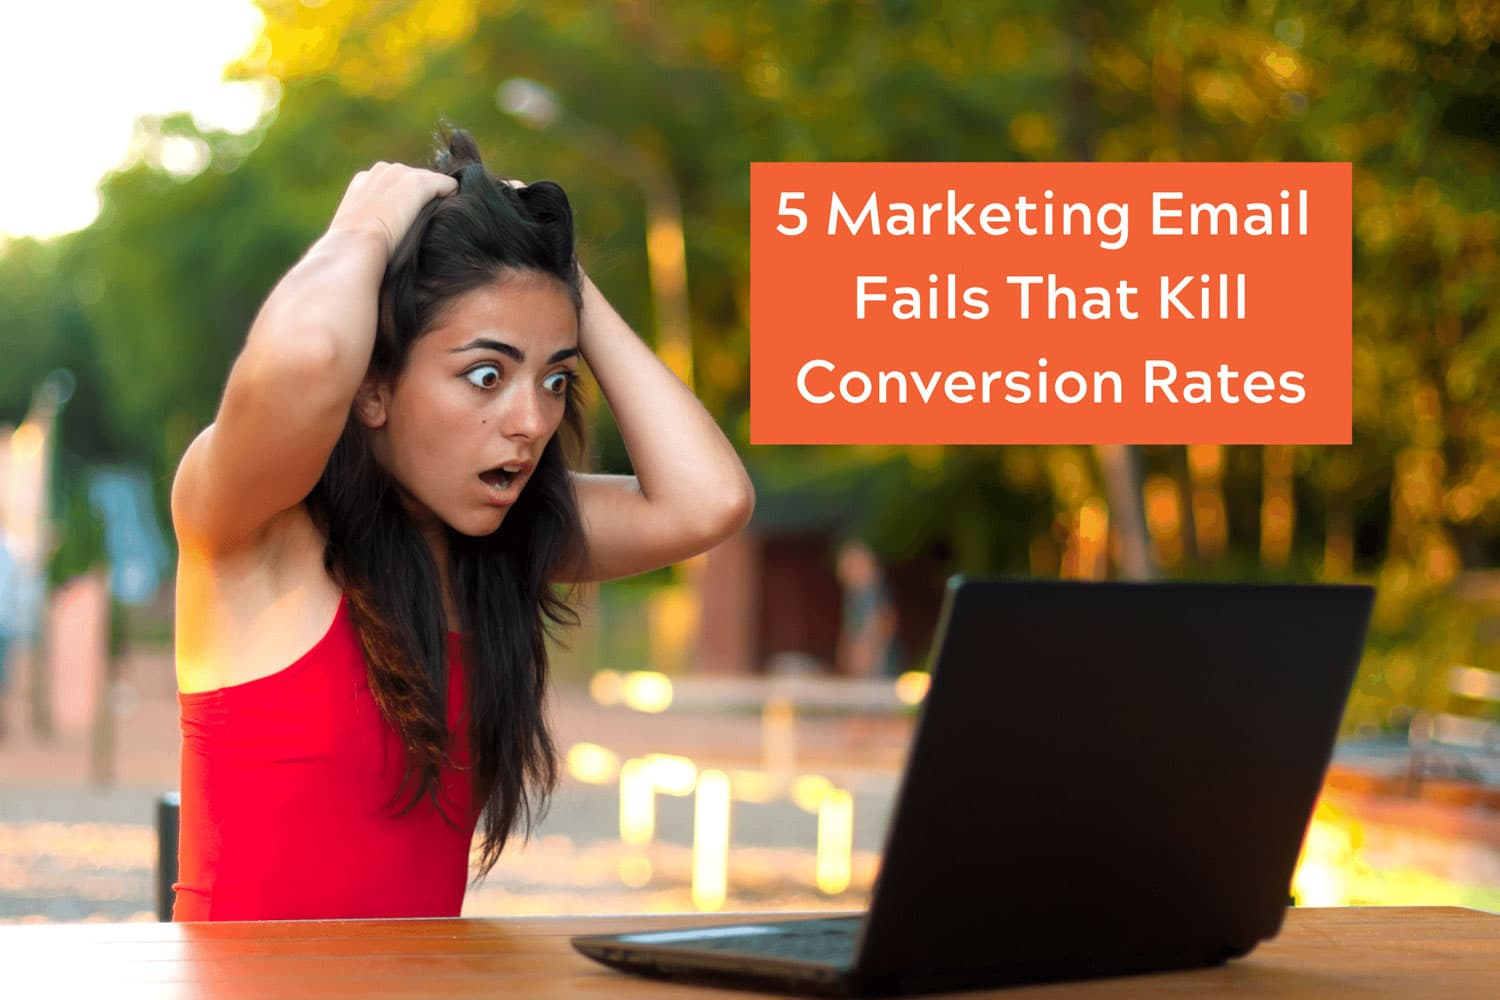 5 Marketing Email Fails That Kill Conversion Rates